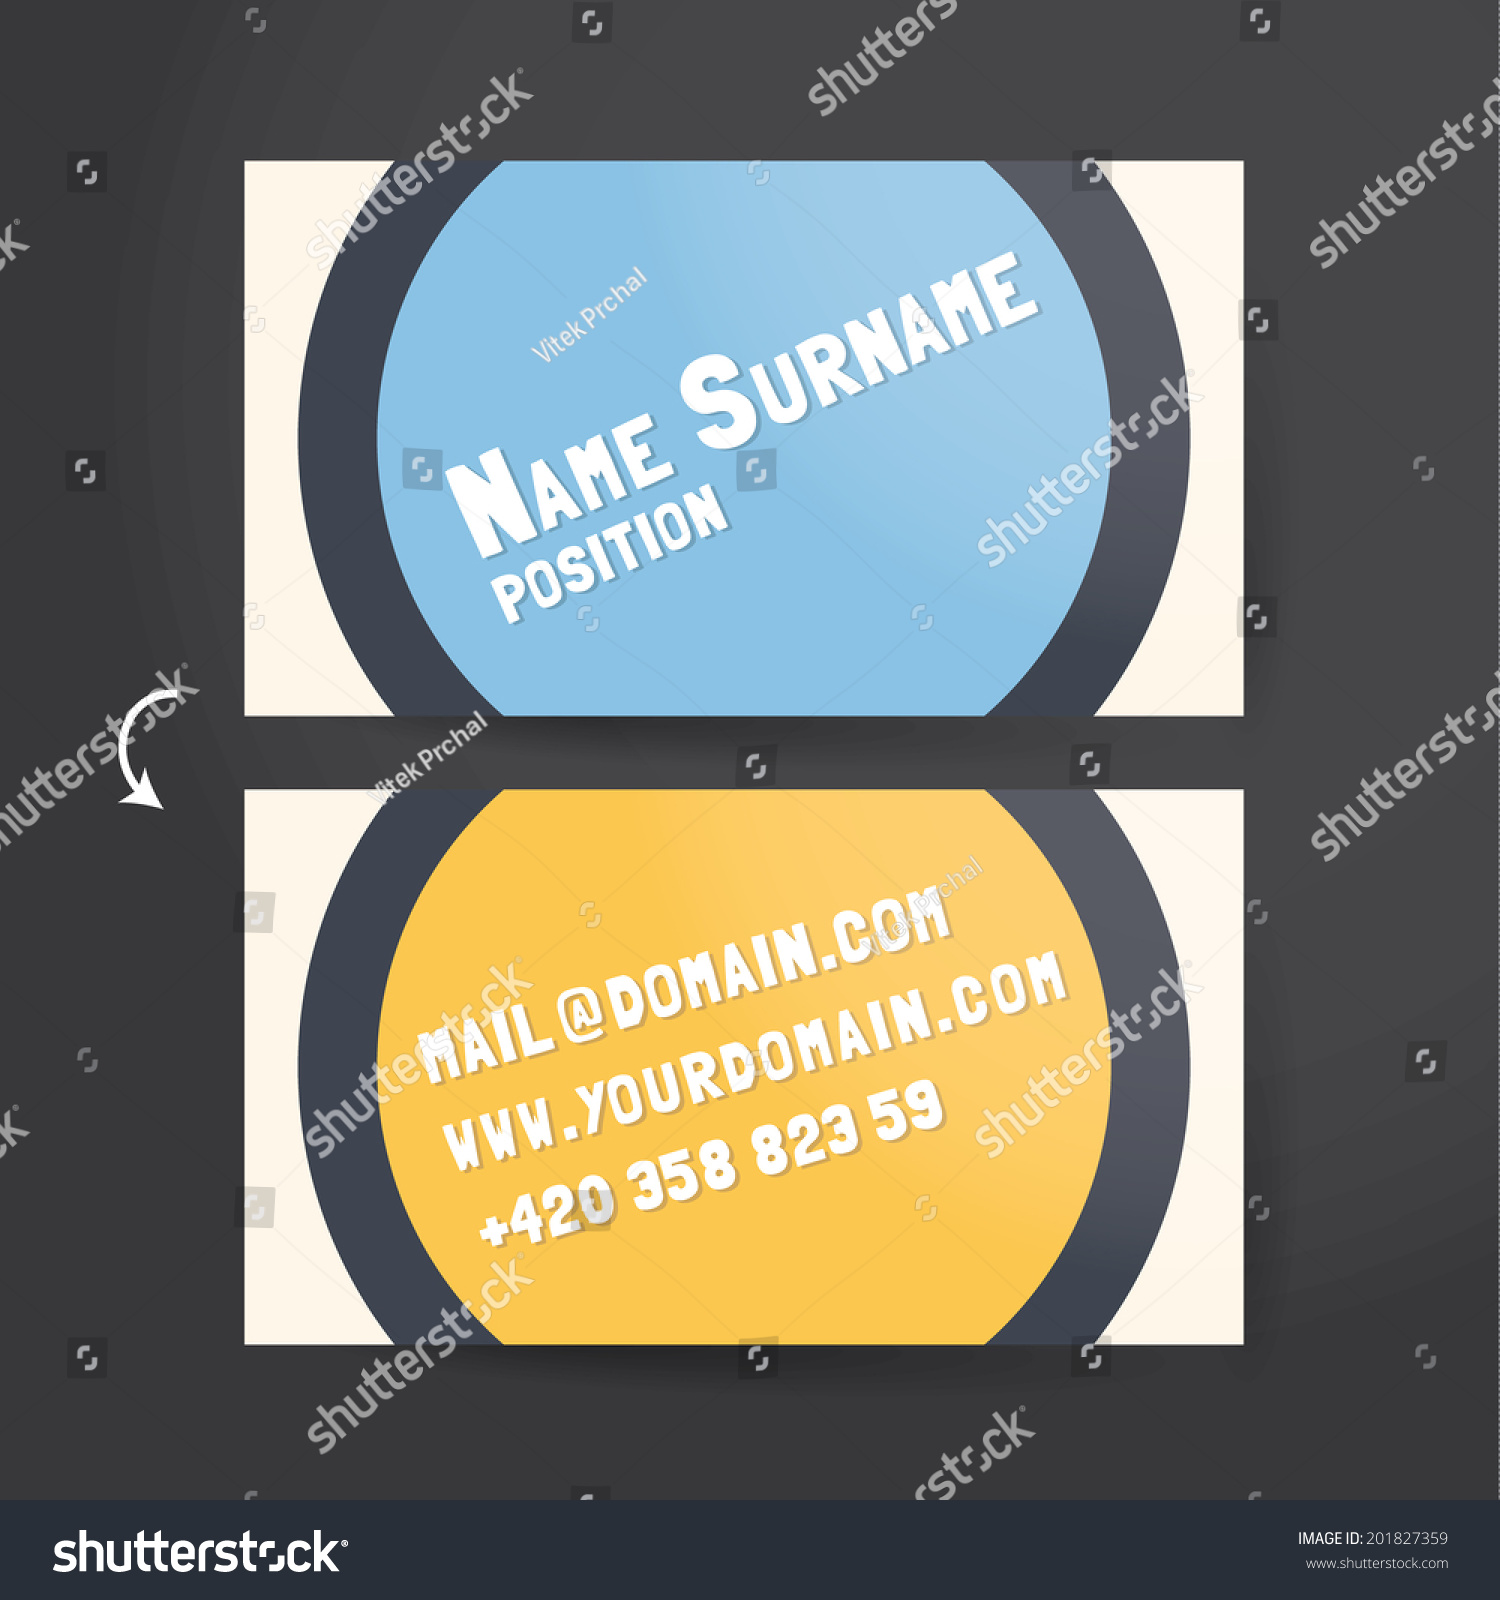 Template Unusual Funky Business Card Vector Stock Vector 201827359 ...